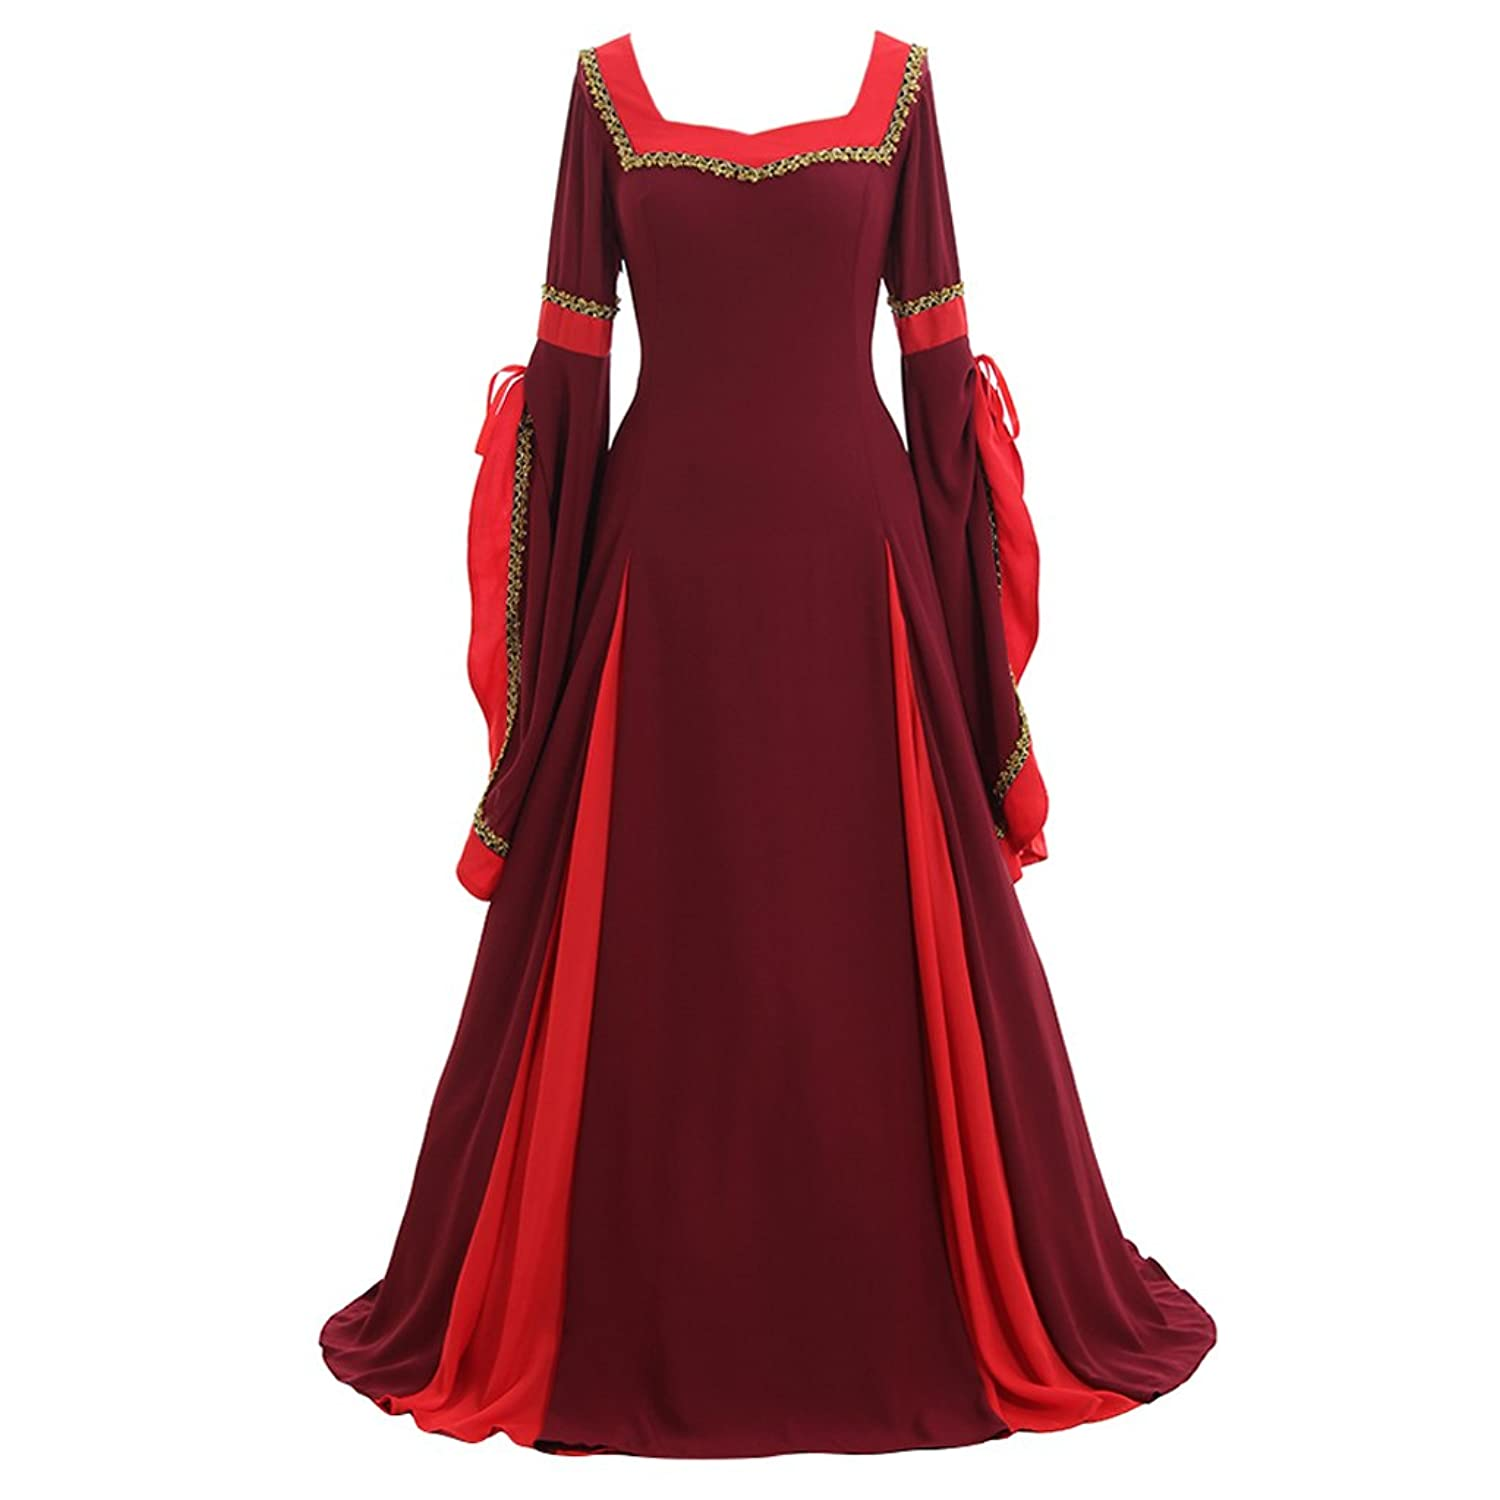 b3c5e1898adbe ... Queen Lady Guinevere Bordeaux-Red Women s Medieval Dress Costume -  DeluxeAdultCostumes.com